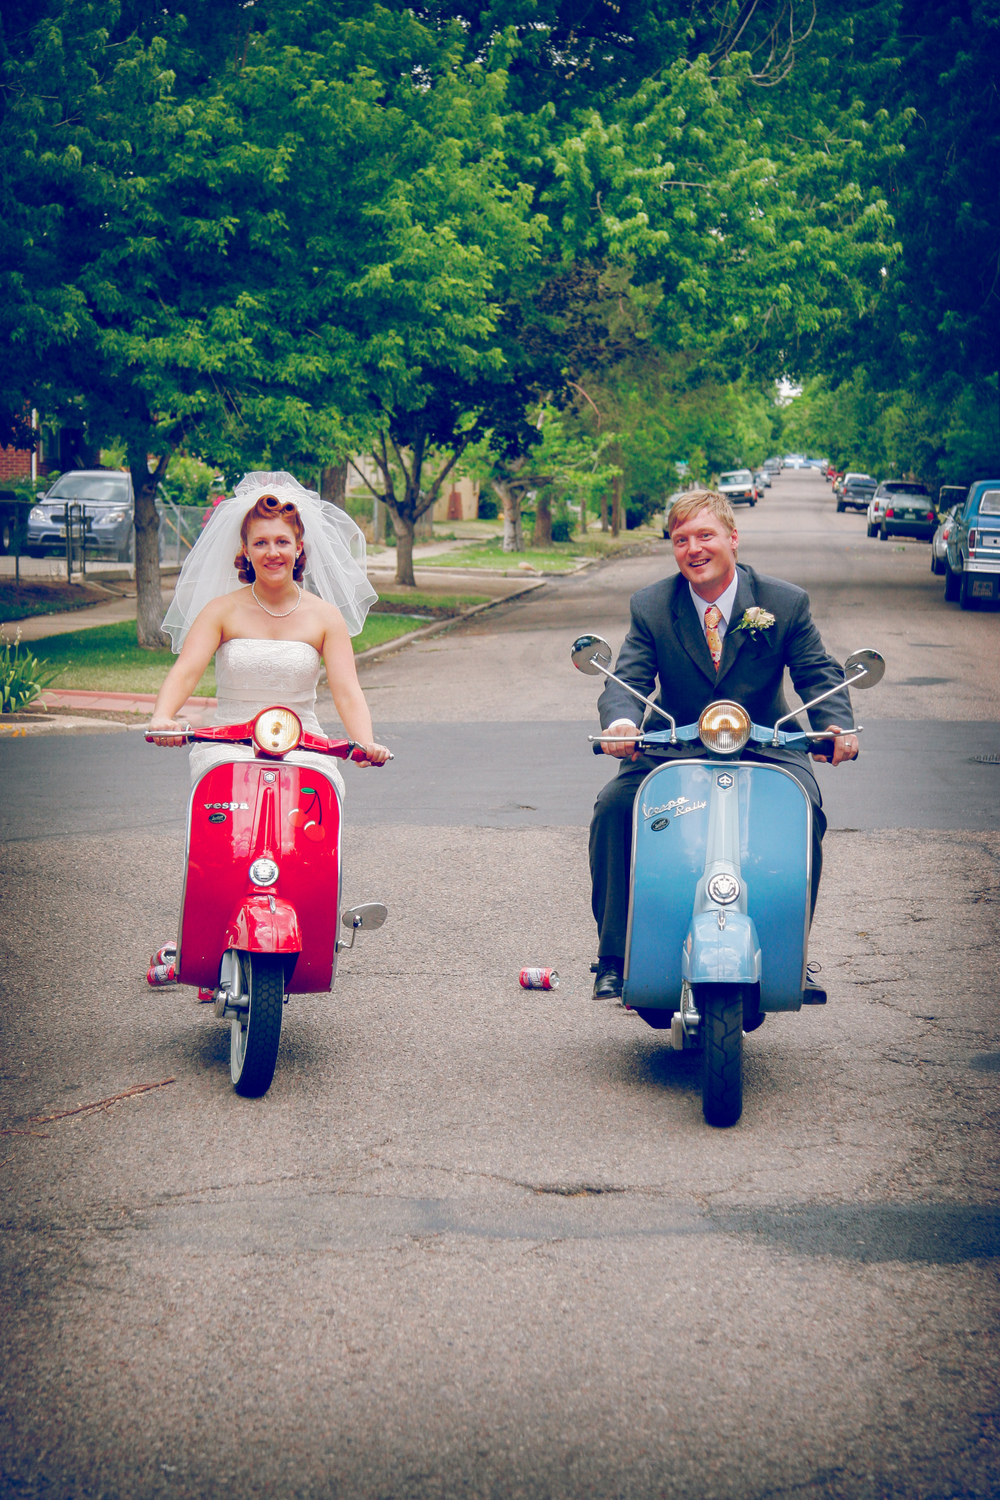 Highlands_Vespa_Denver_Wedding_028.JPG